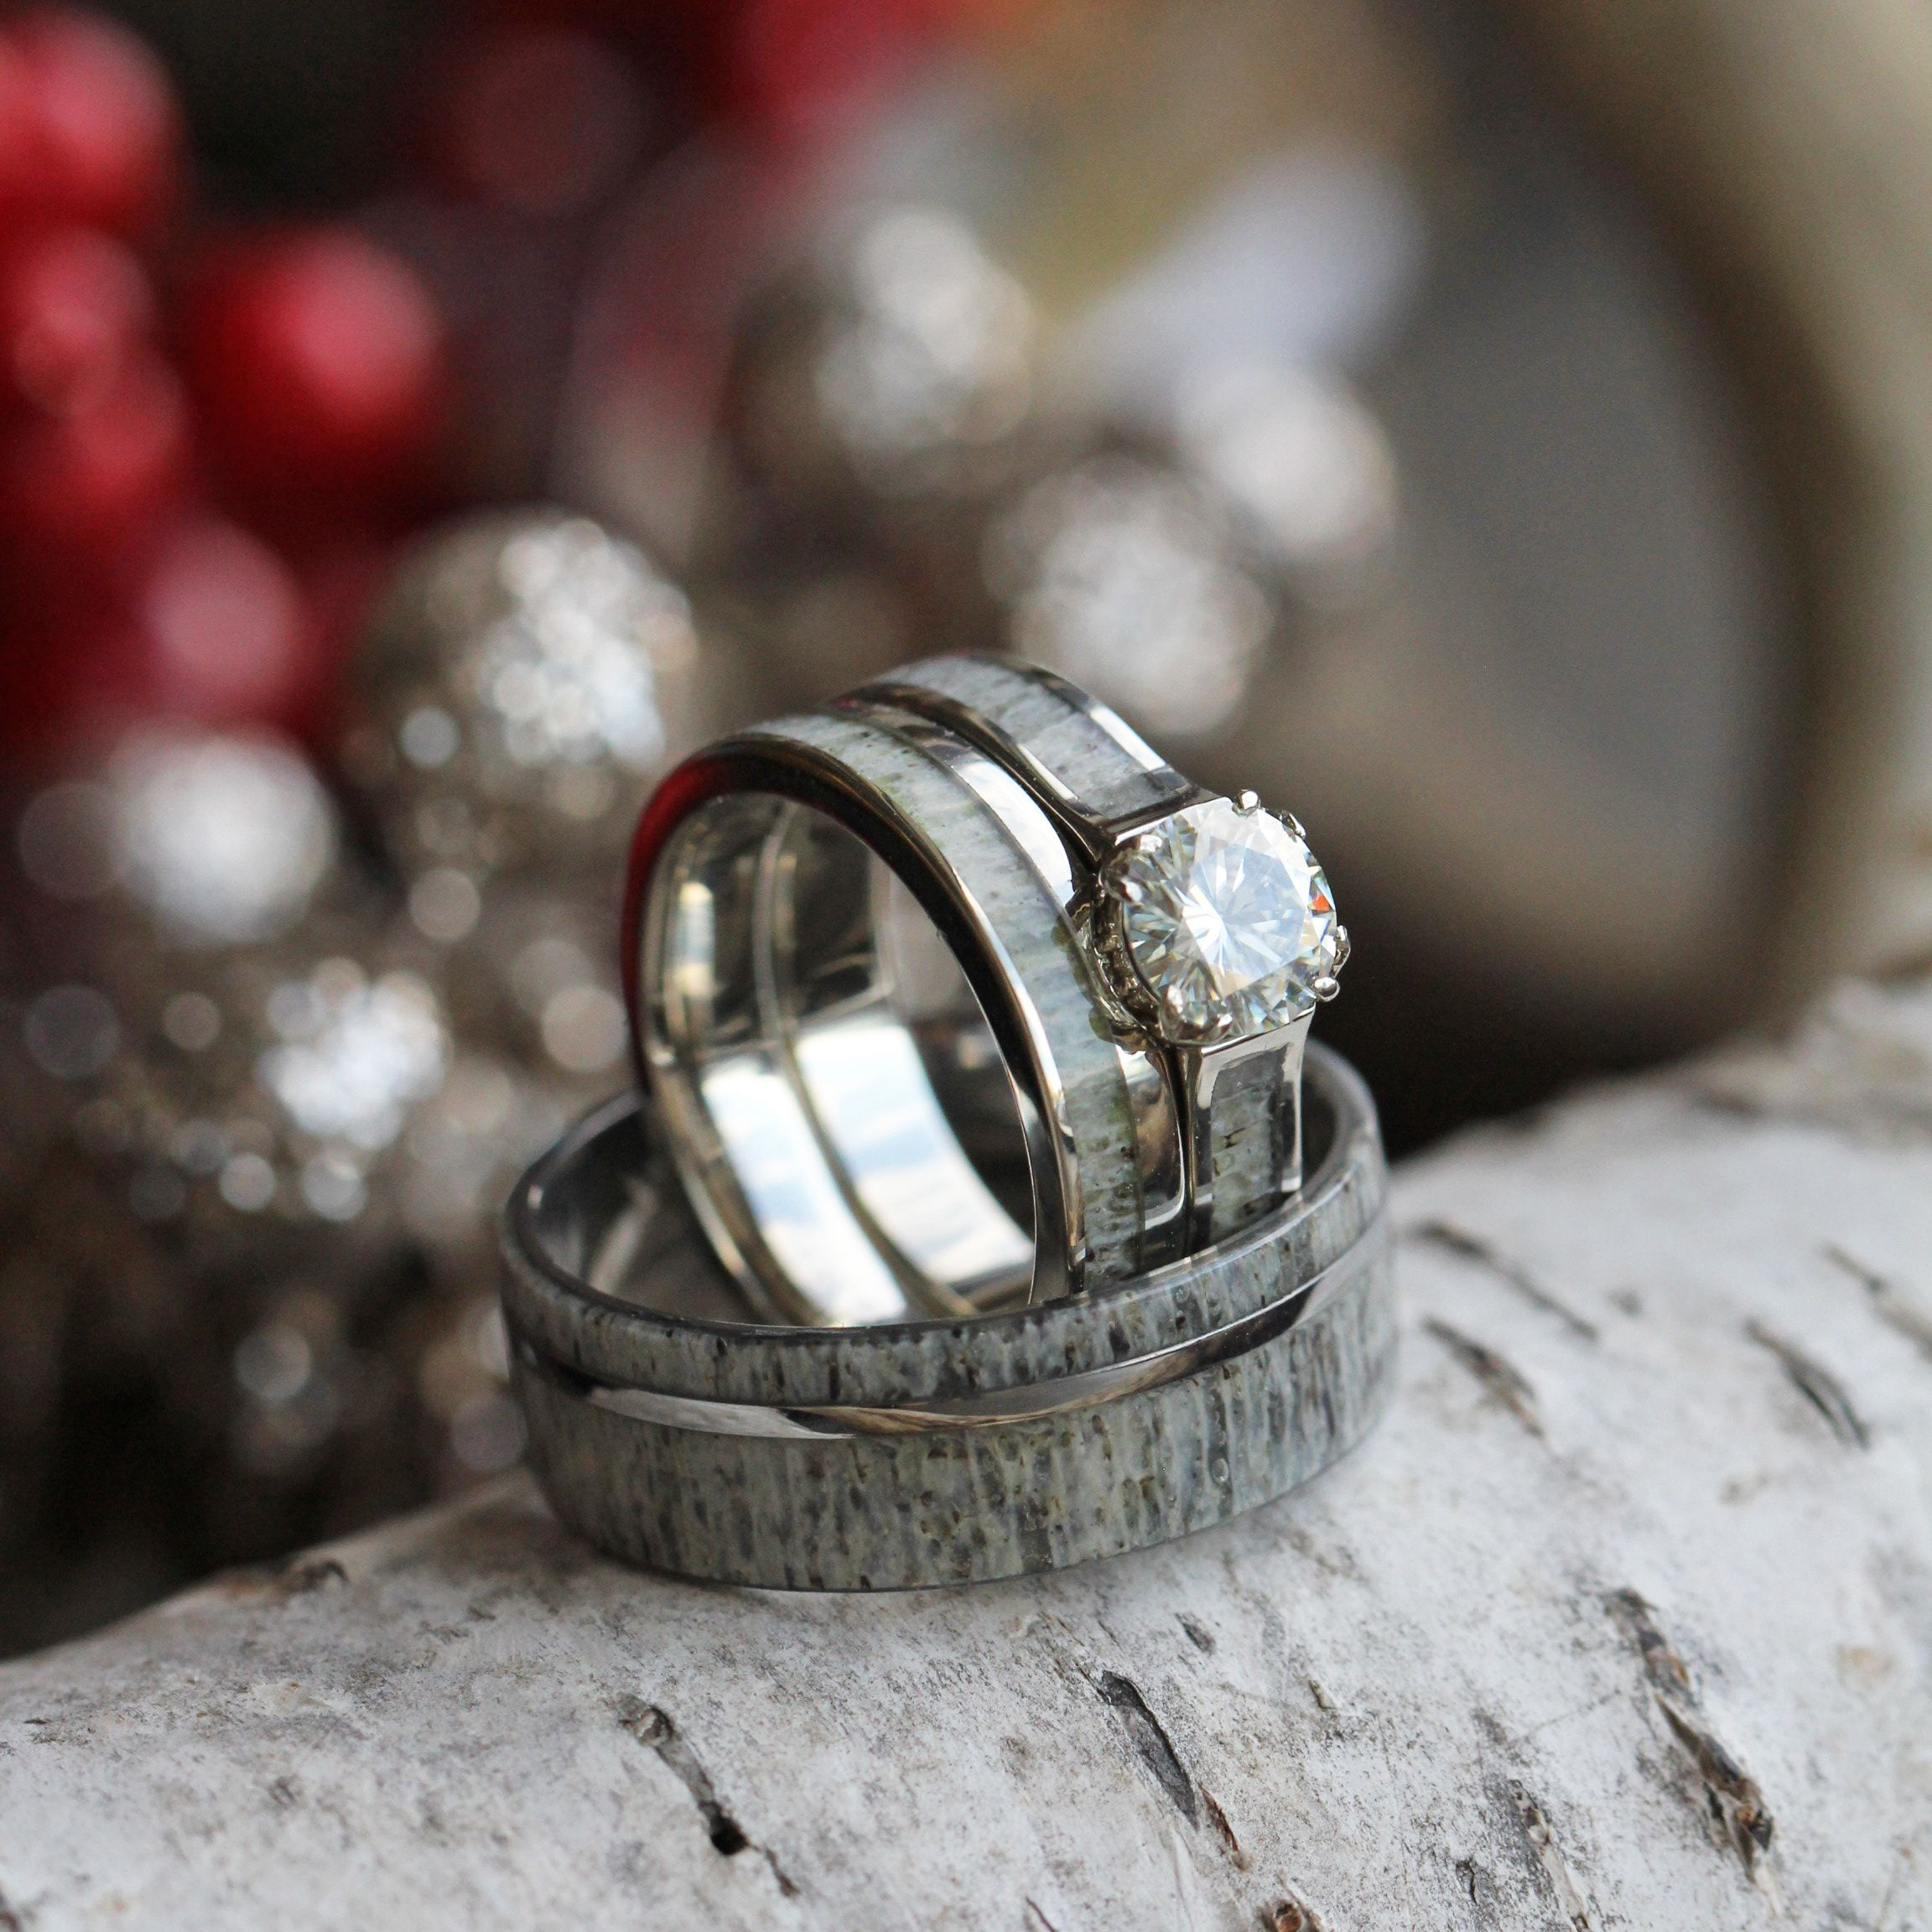 Deer Antler Wedding Ring Set With Moissanite Bridal Set And Men's Band